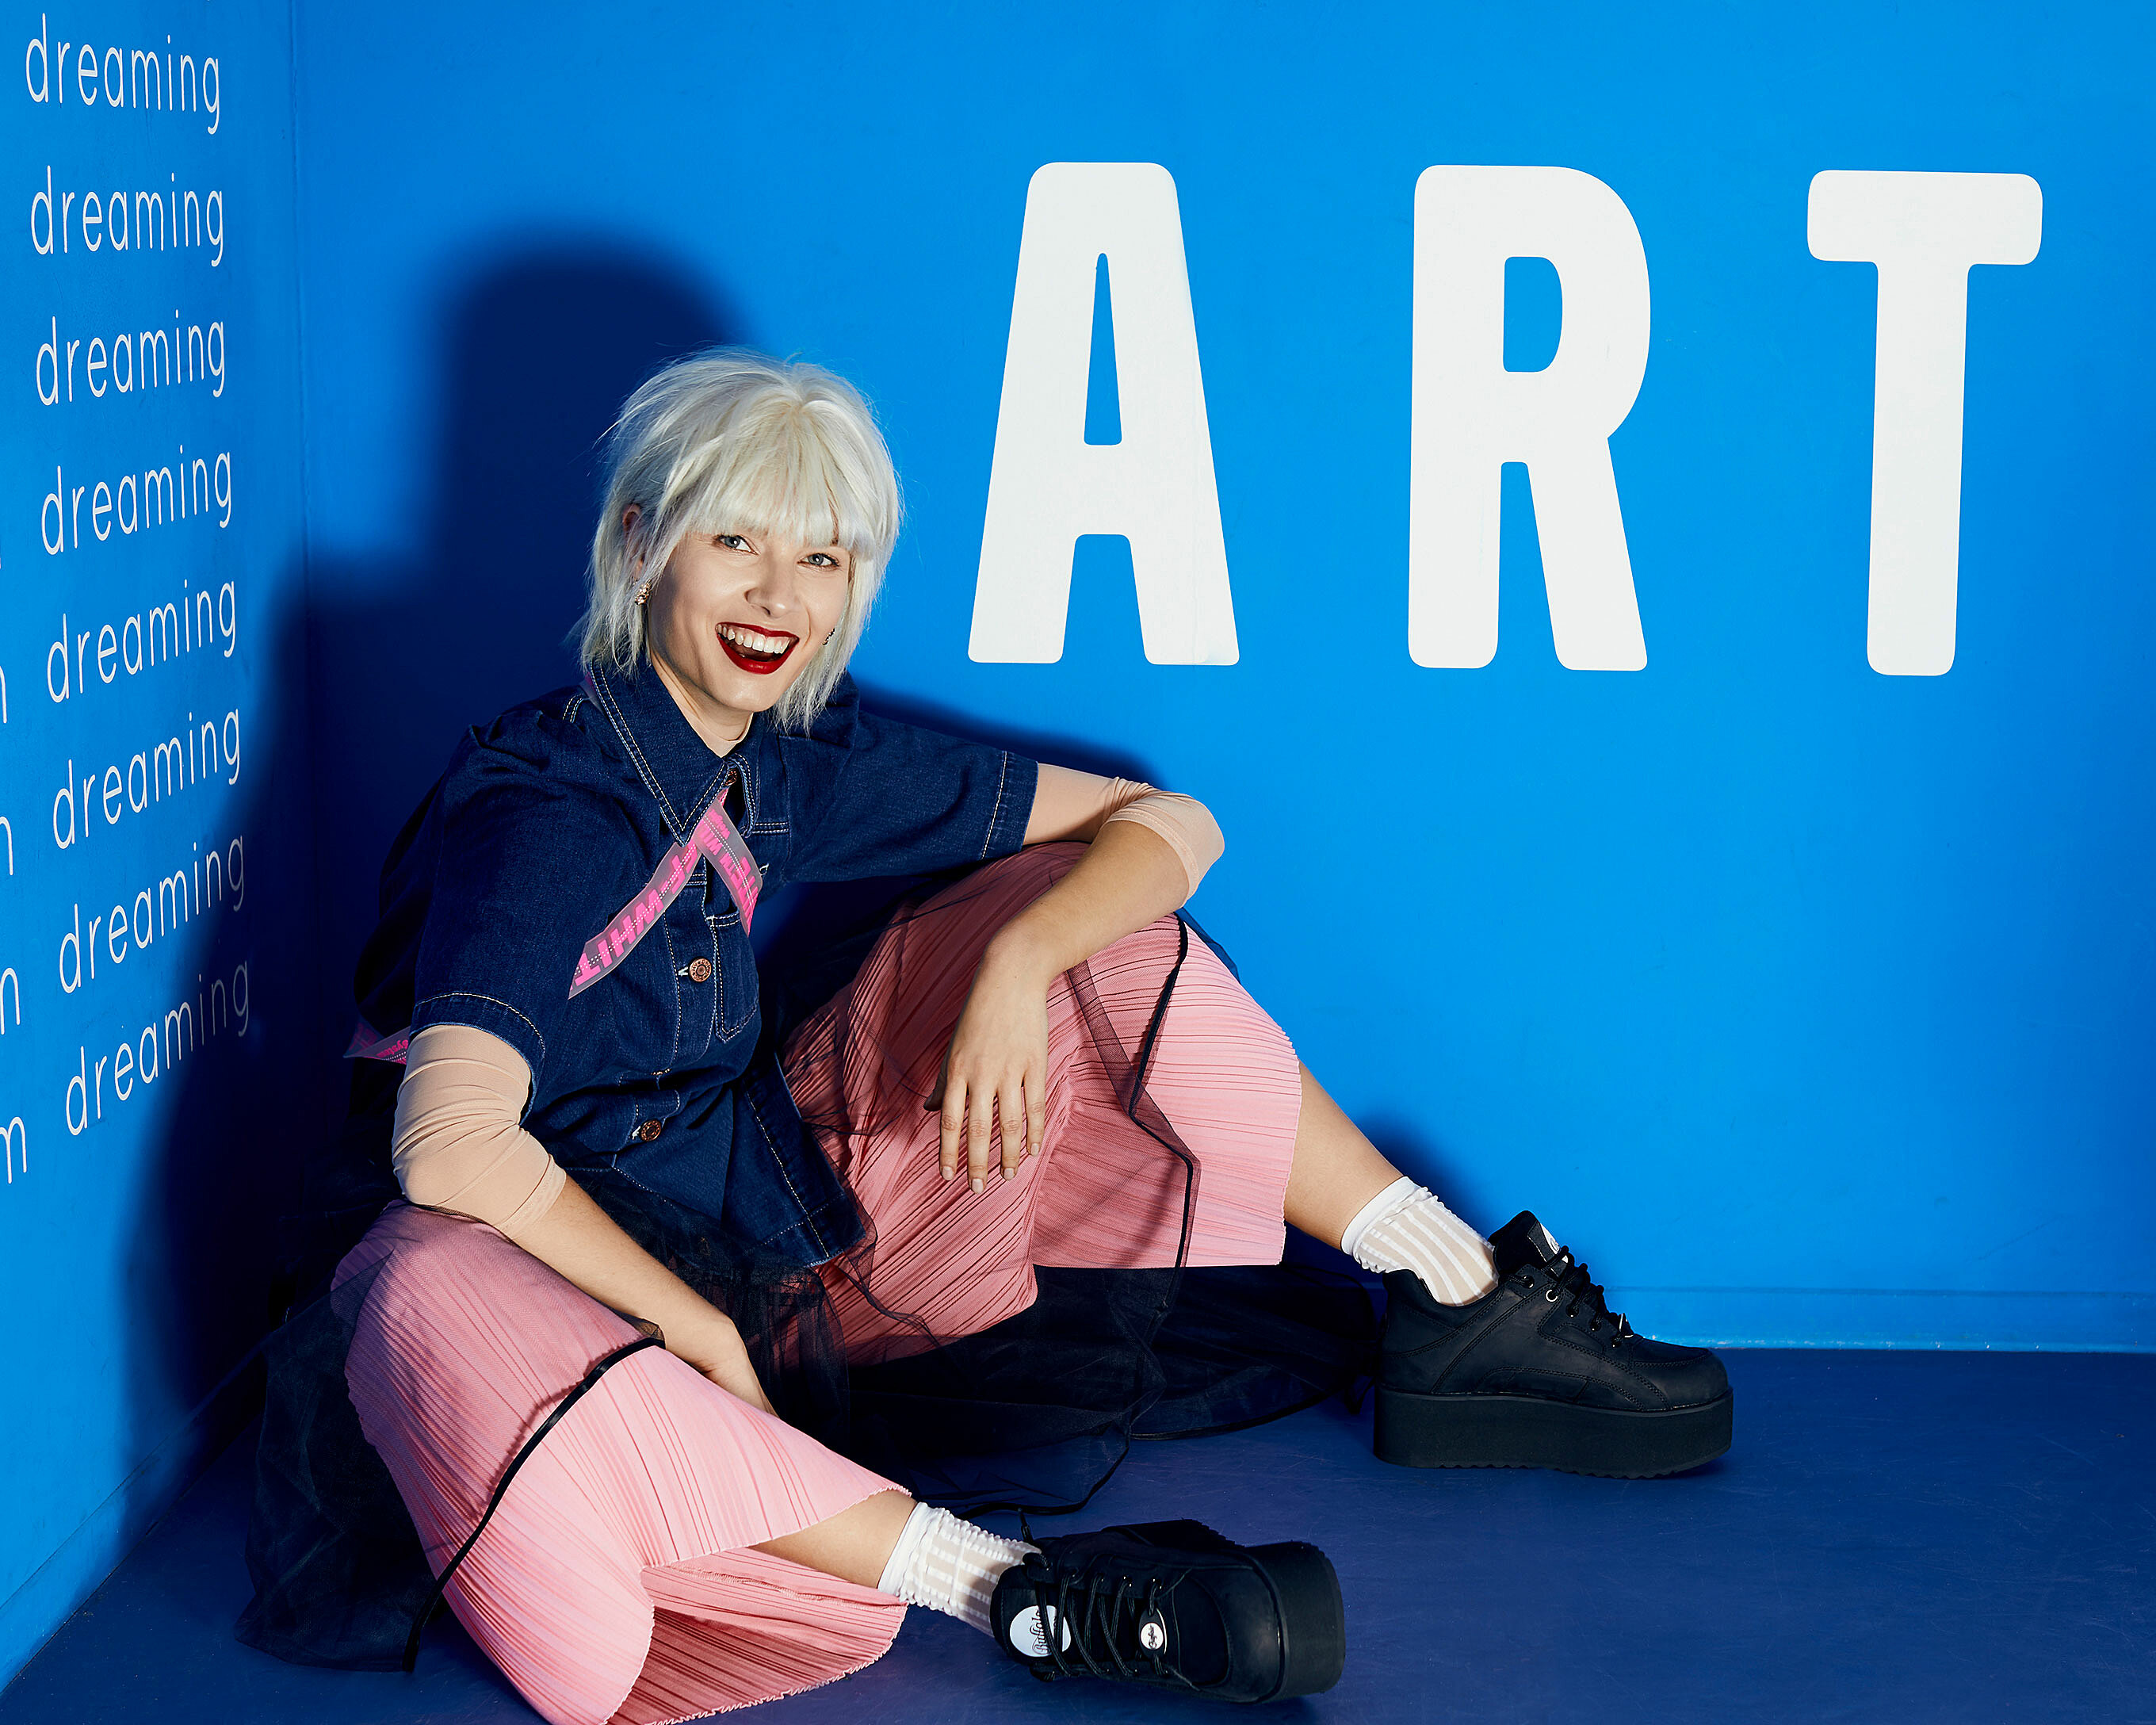 A female model with a blonde wig sits on the floor in a blue corner in pink trousers. She wears also a denim shirt and black buffalos with white socks. She is laughing in front of the camera